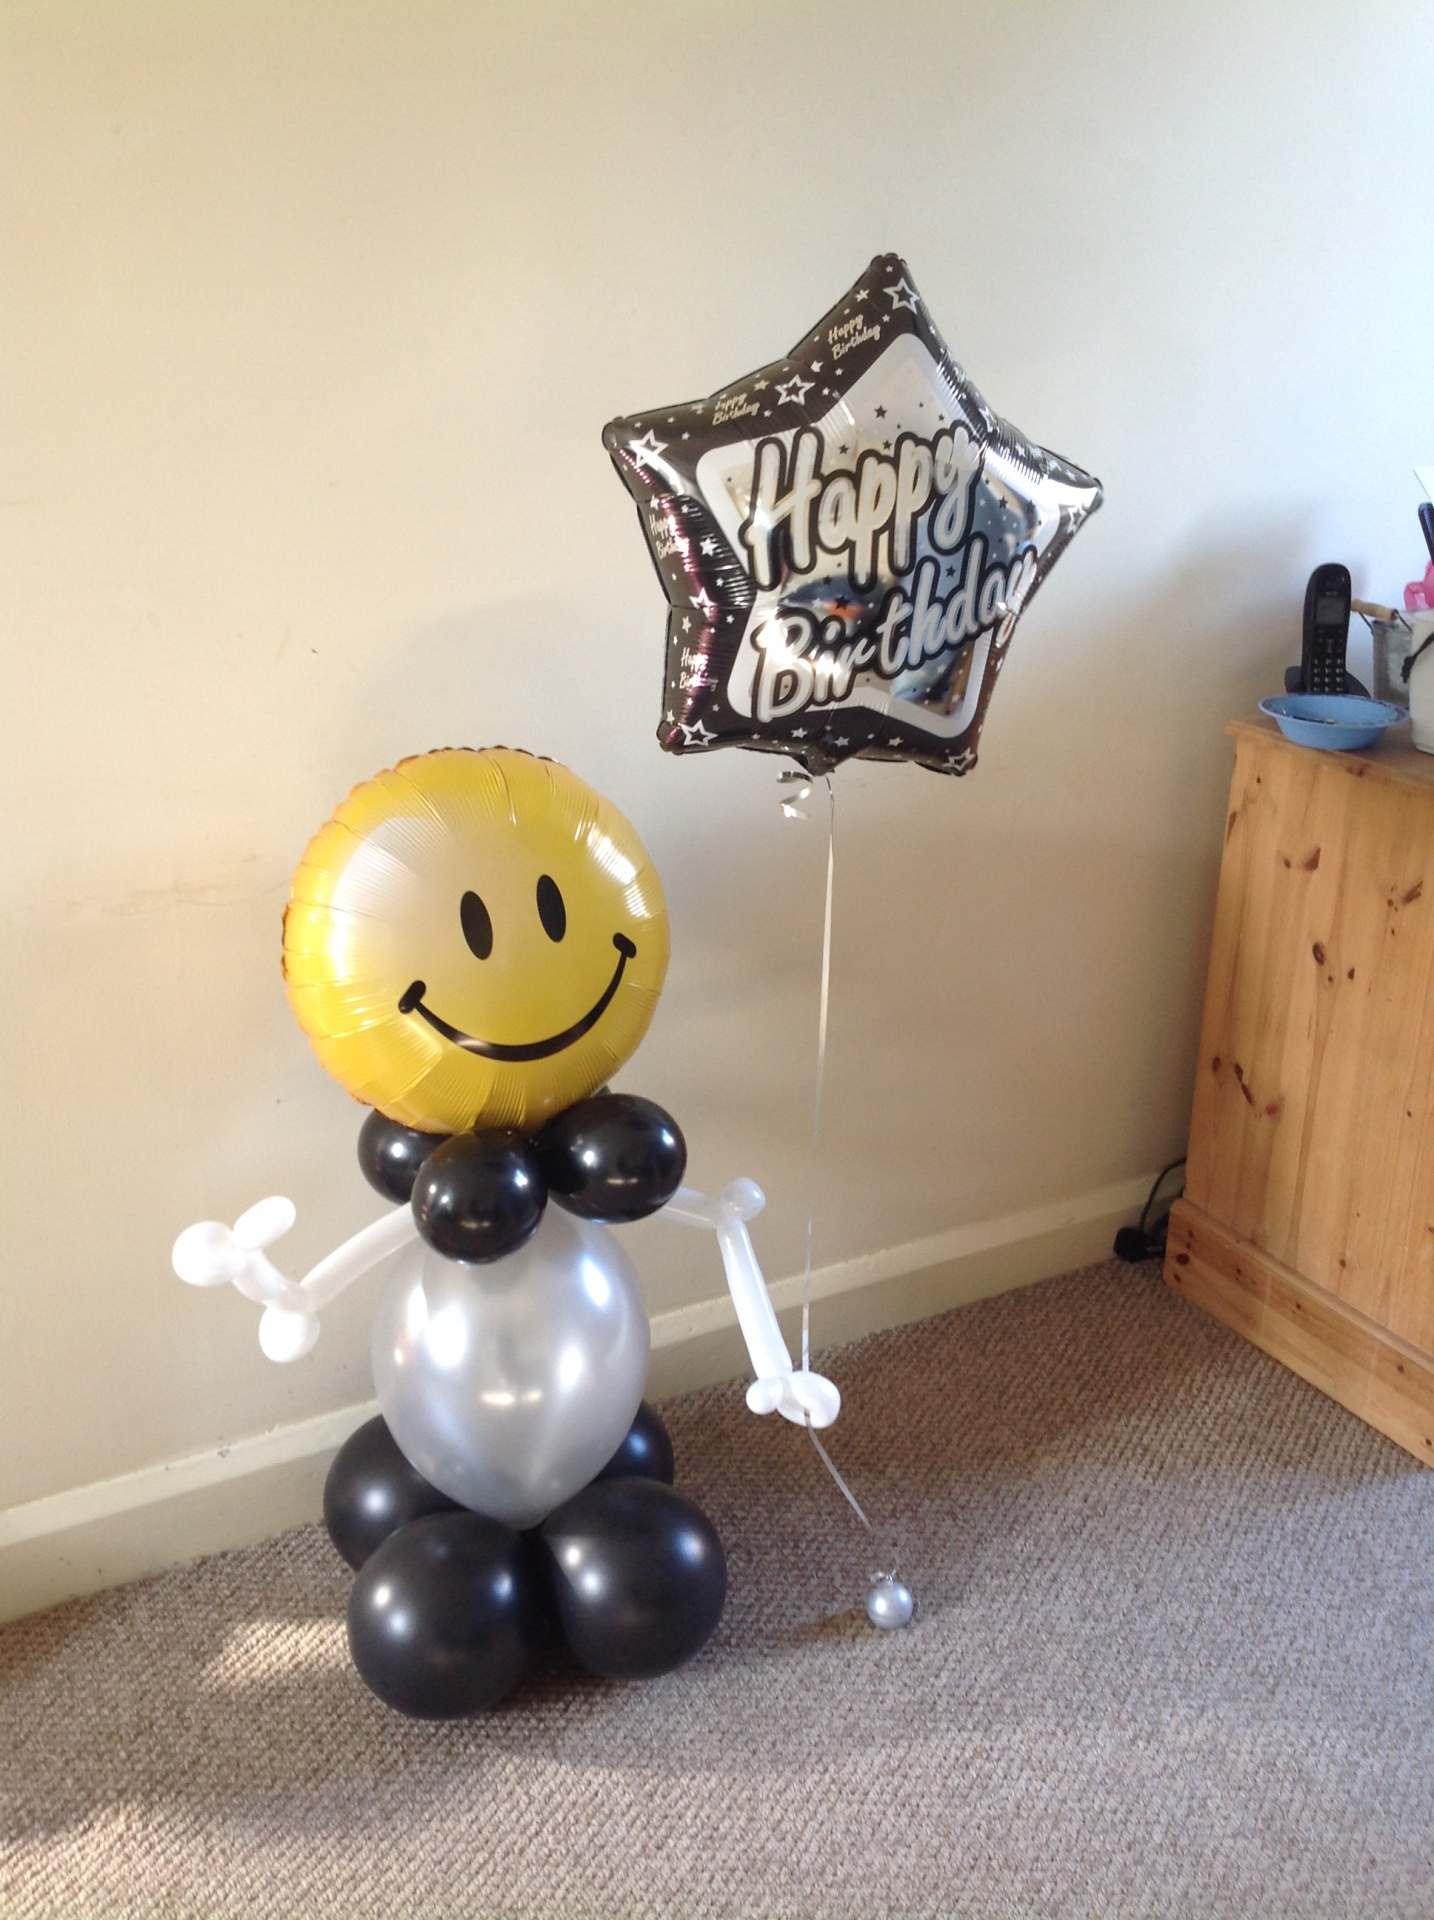 Balloon man holding a birthday balloon